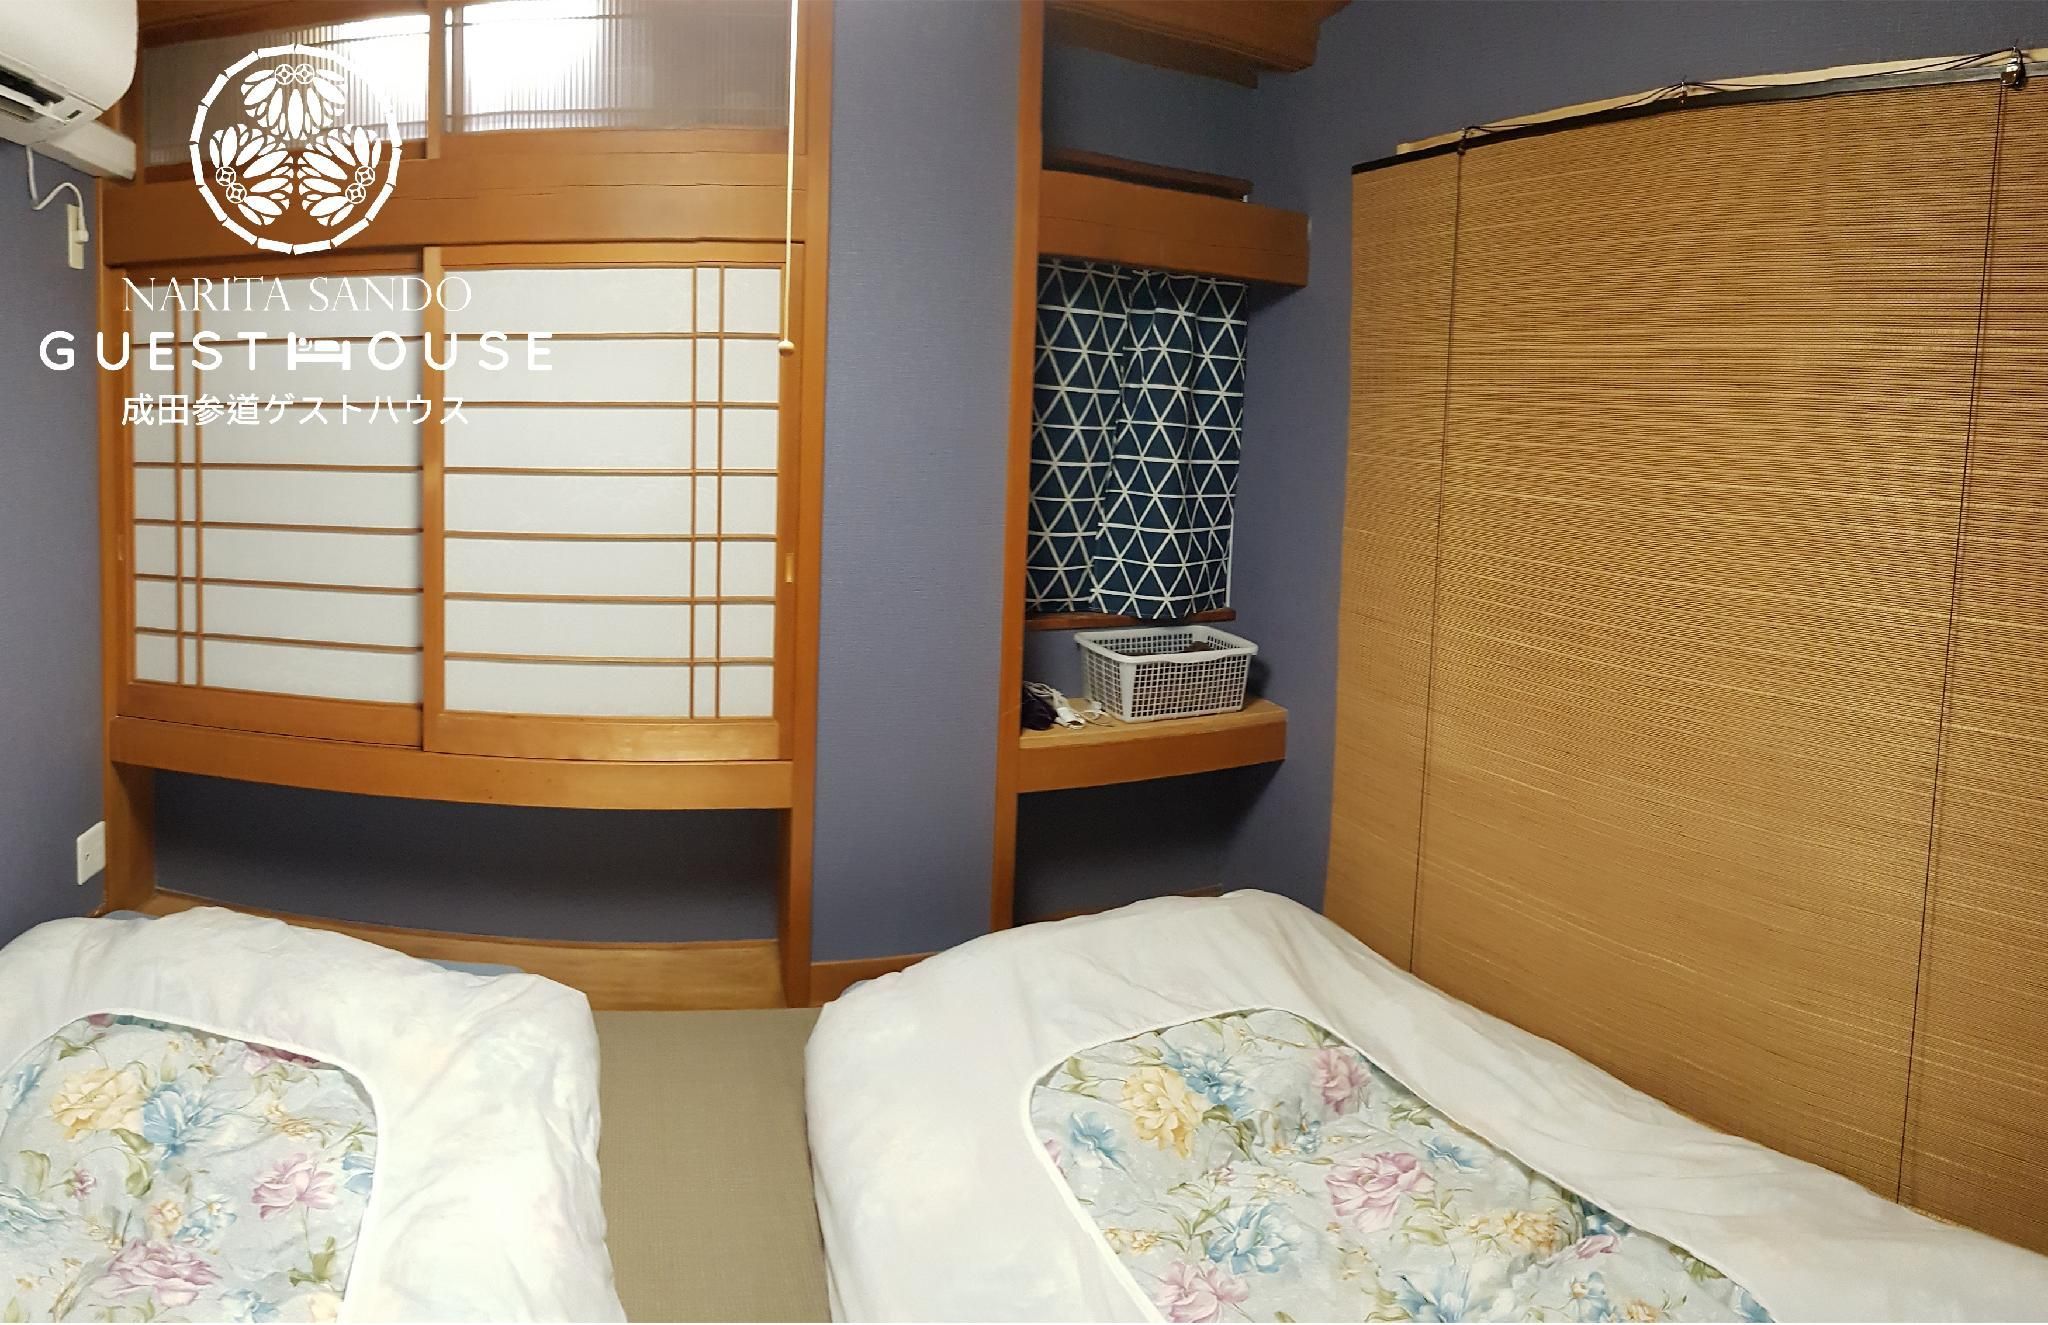 Japanese Economy Twin Room with Shared Bathroom